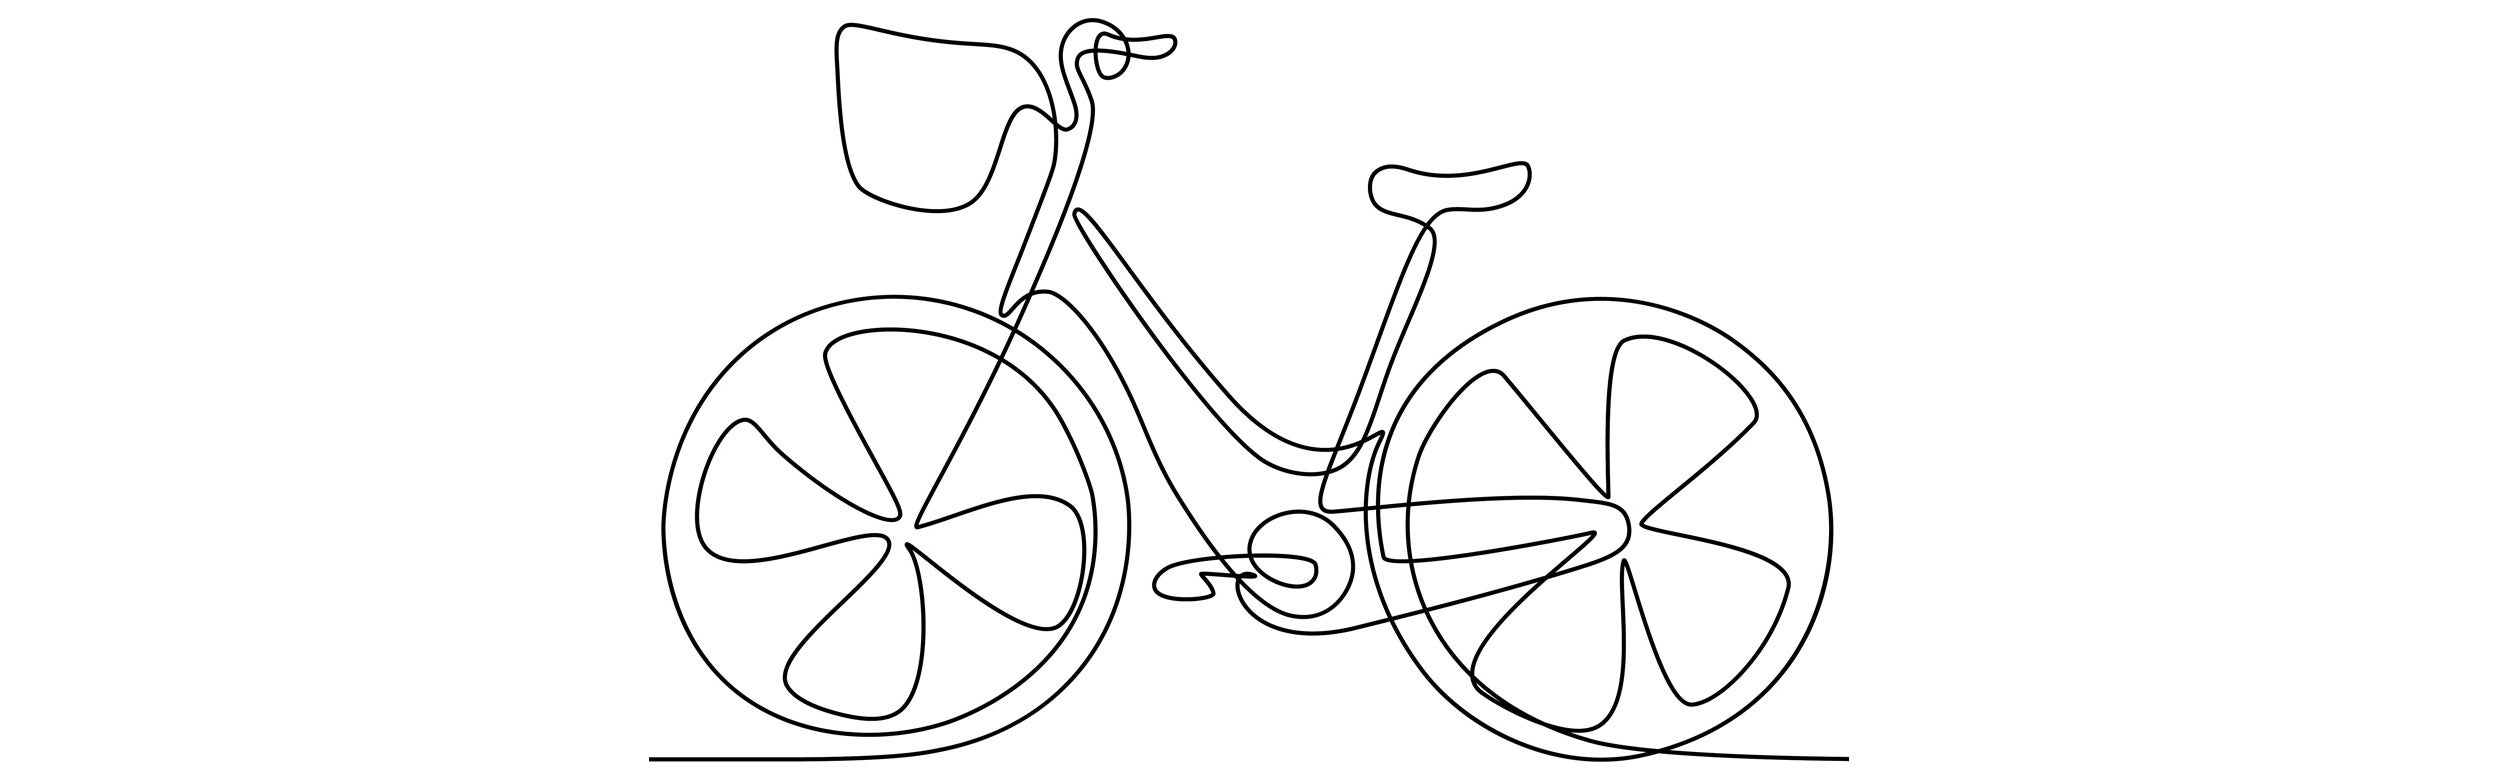 Sketch of a bicycle.